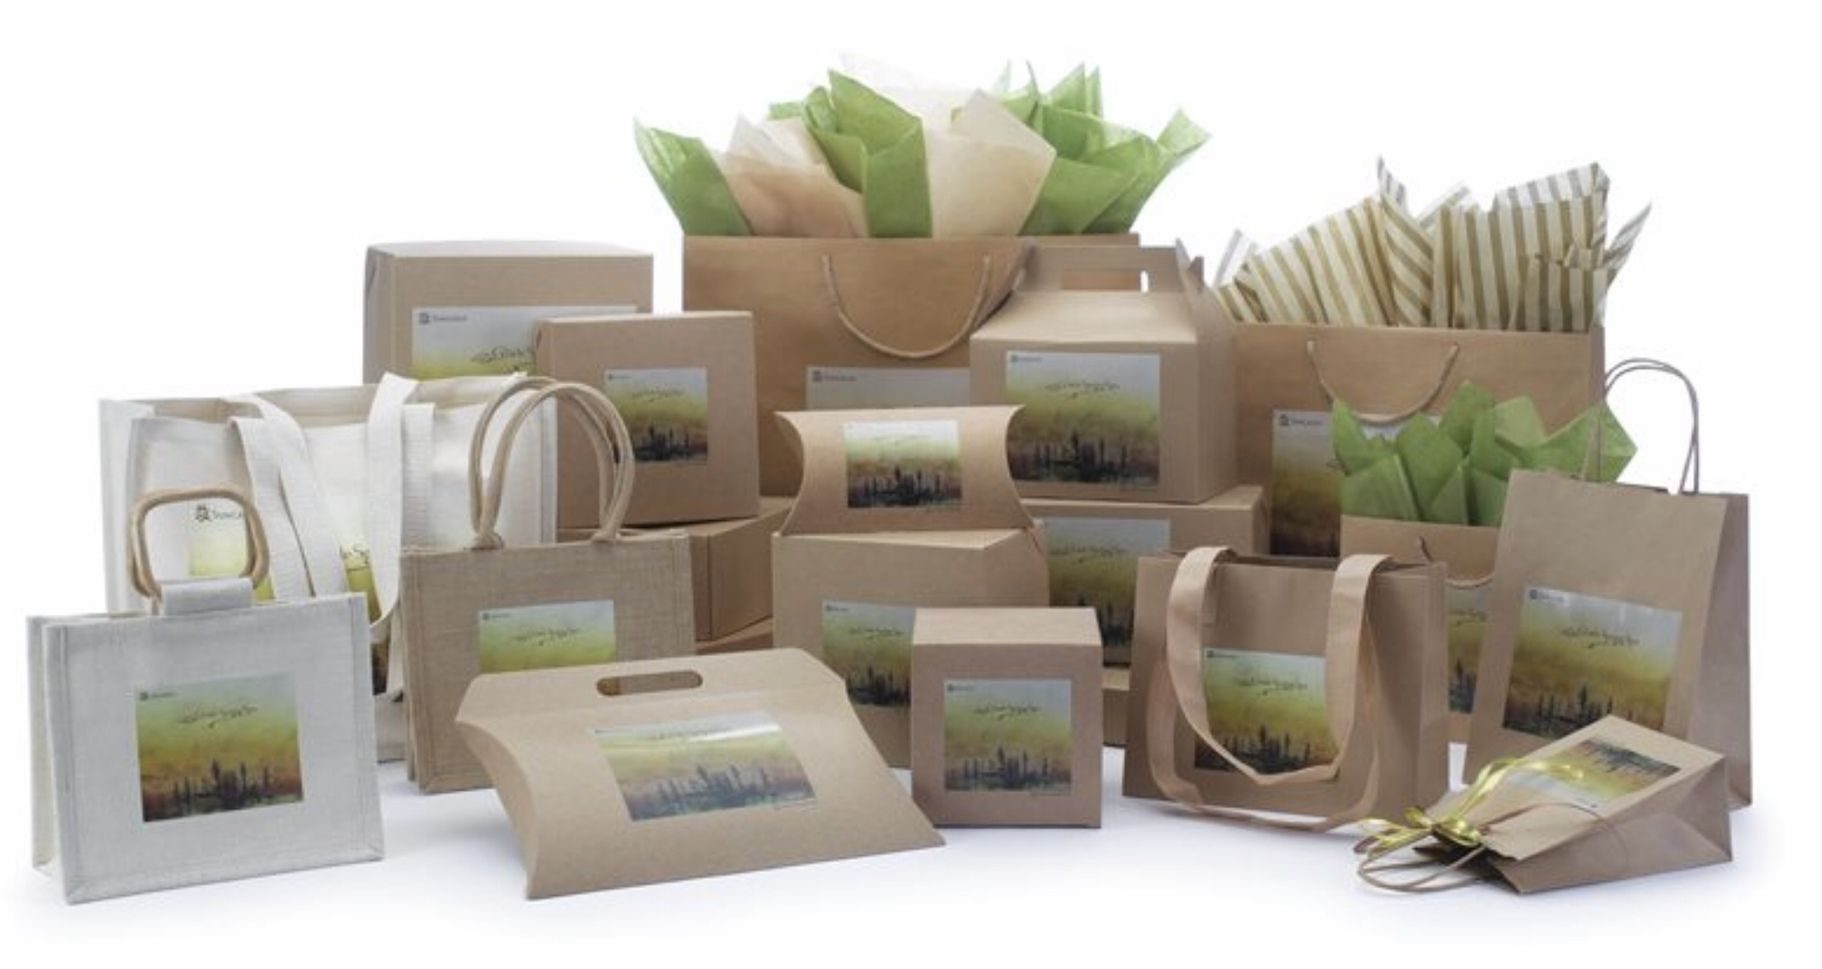 Green Packaging Market Set to Increase 5.7 Each Year All